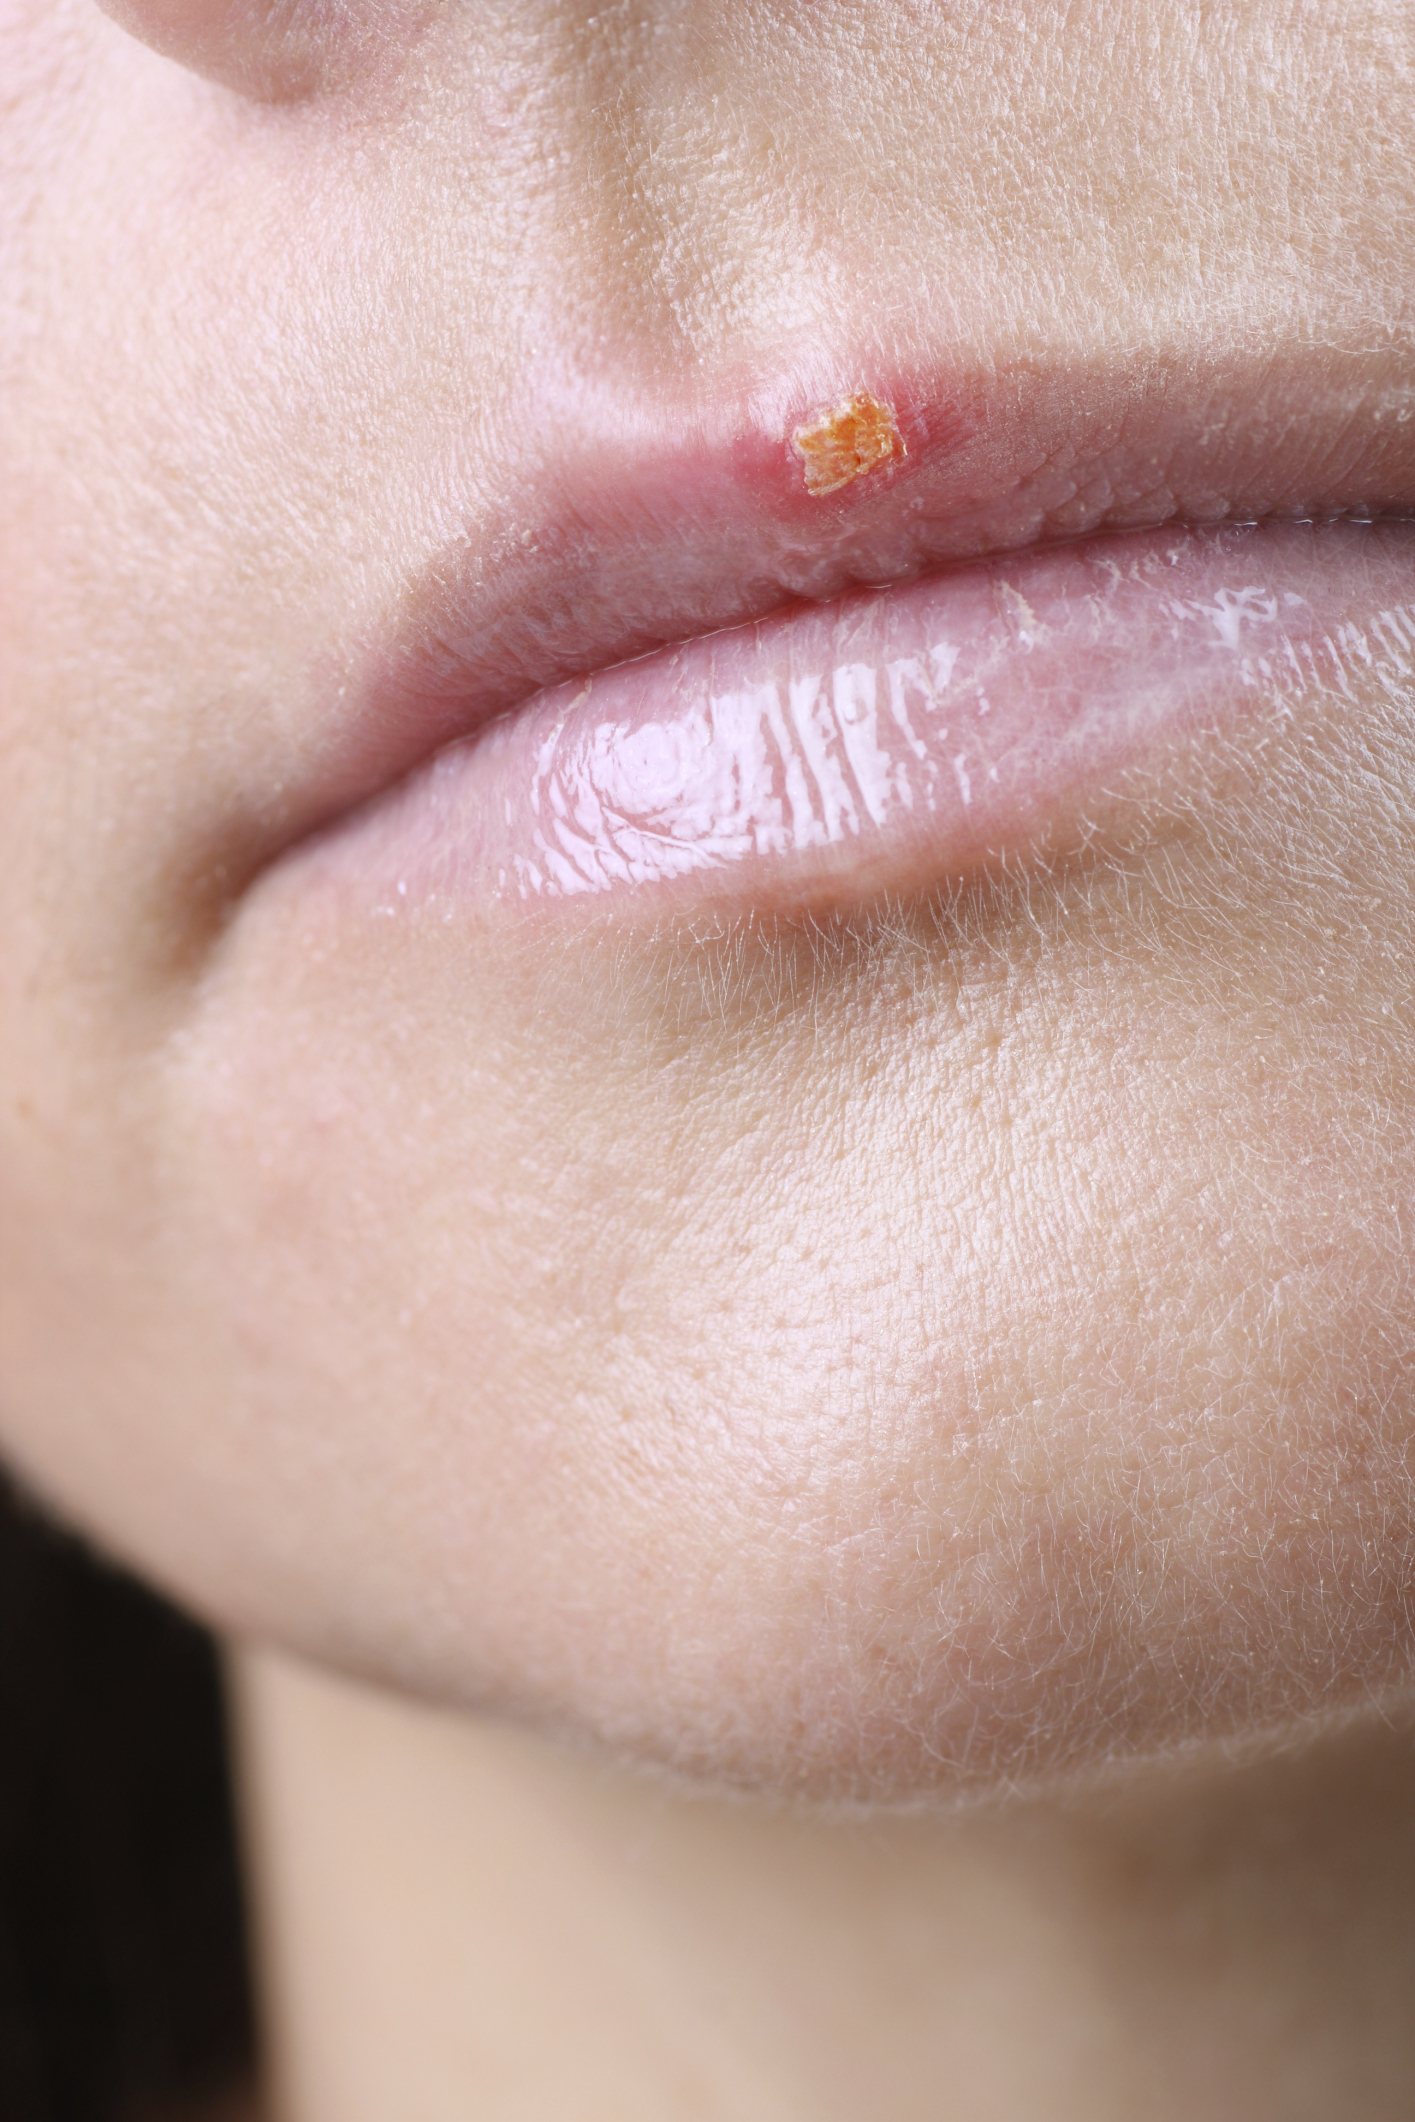 Herpes Q A Do you have questions for DrTom about Herpes?